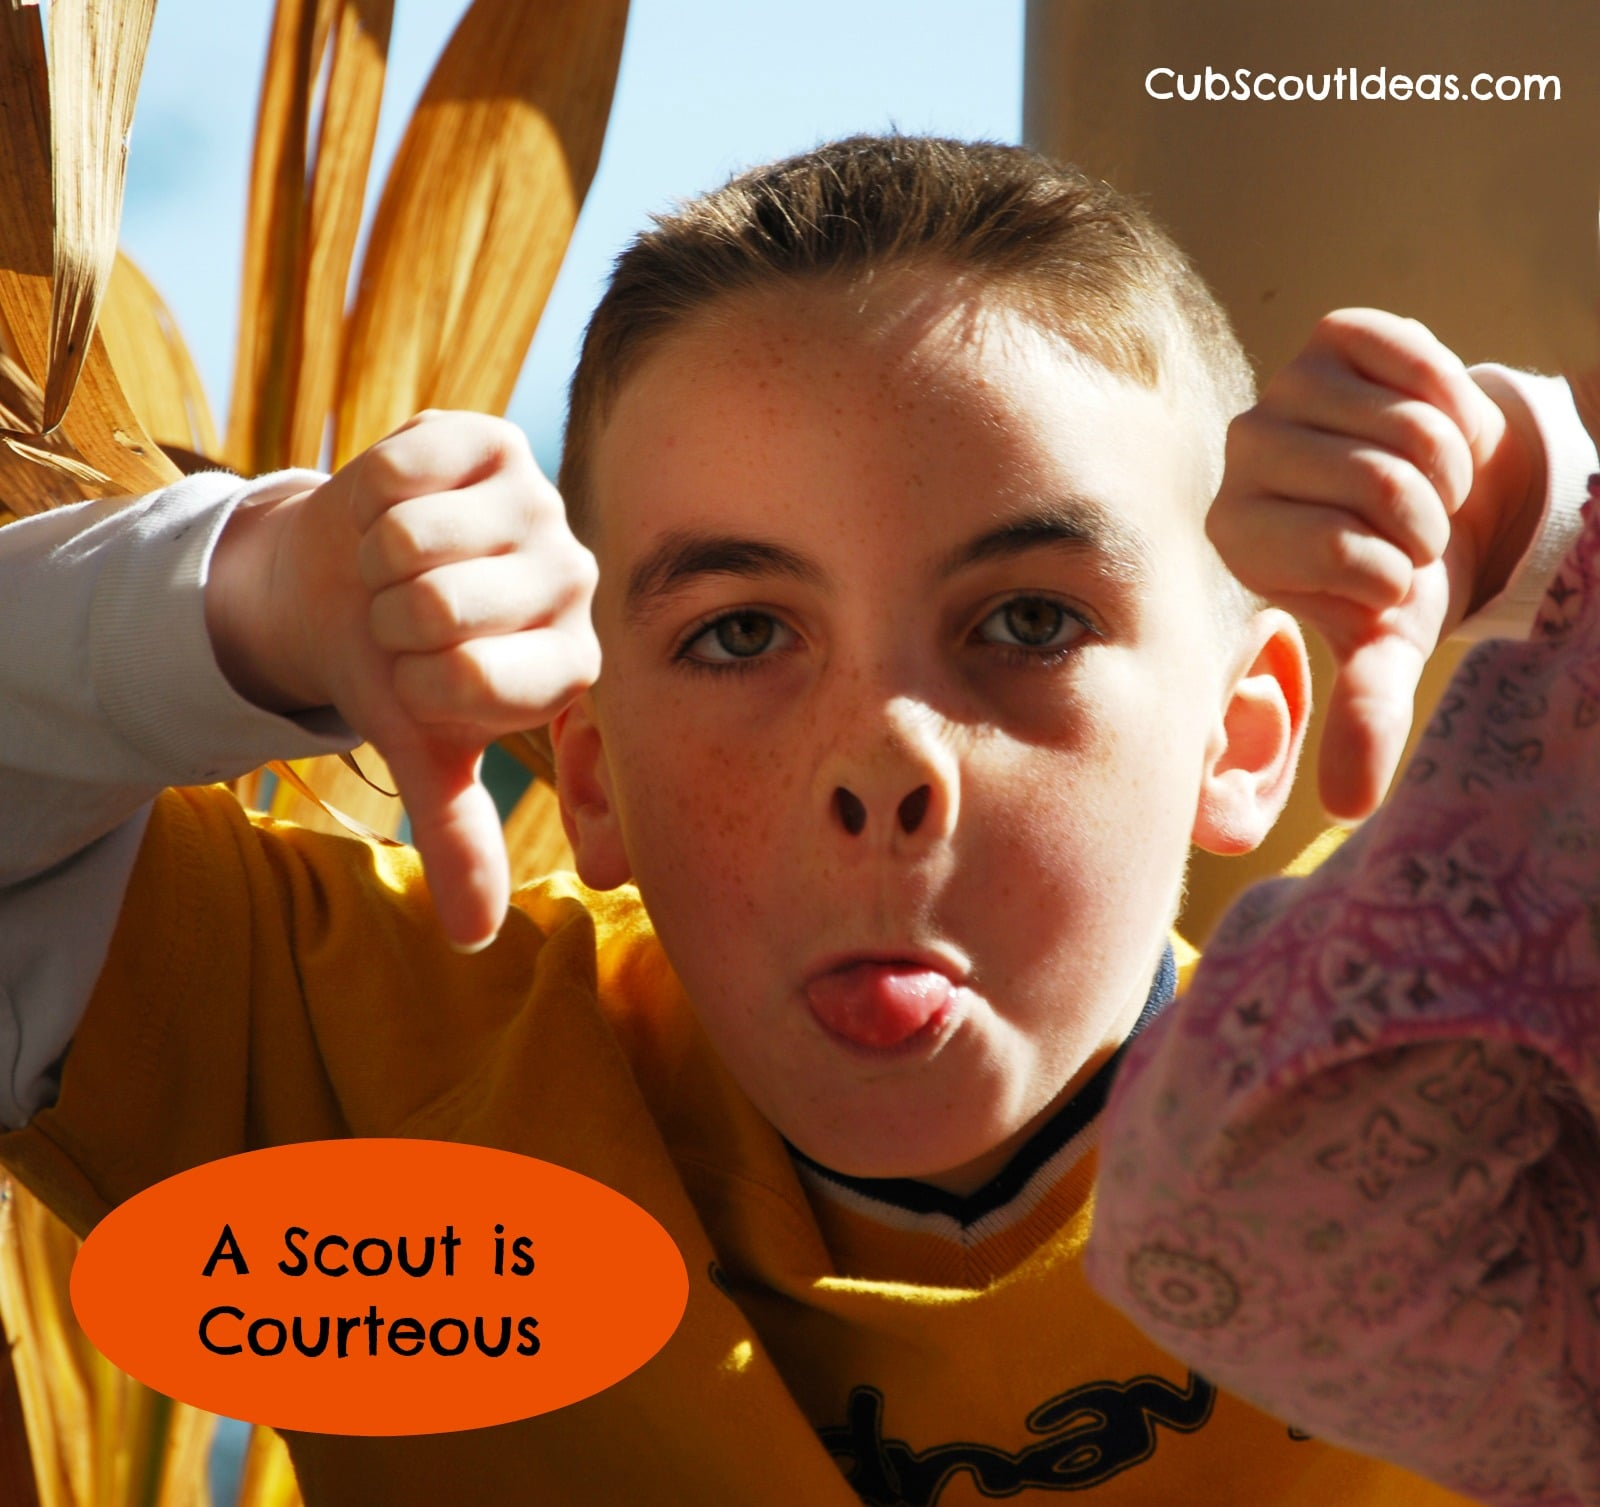 Cub Scouts are Courteous – Learning Good Manners